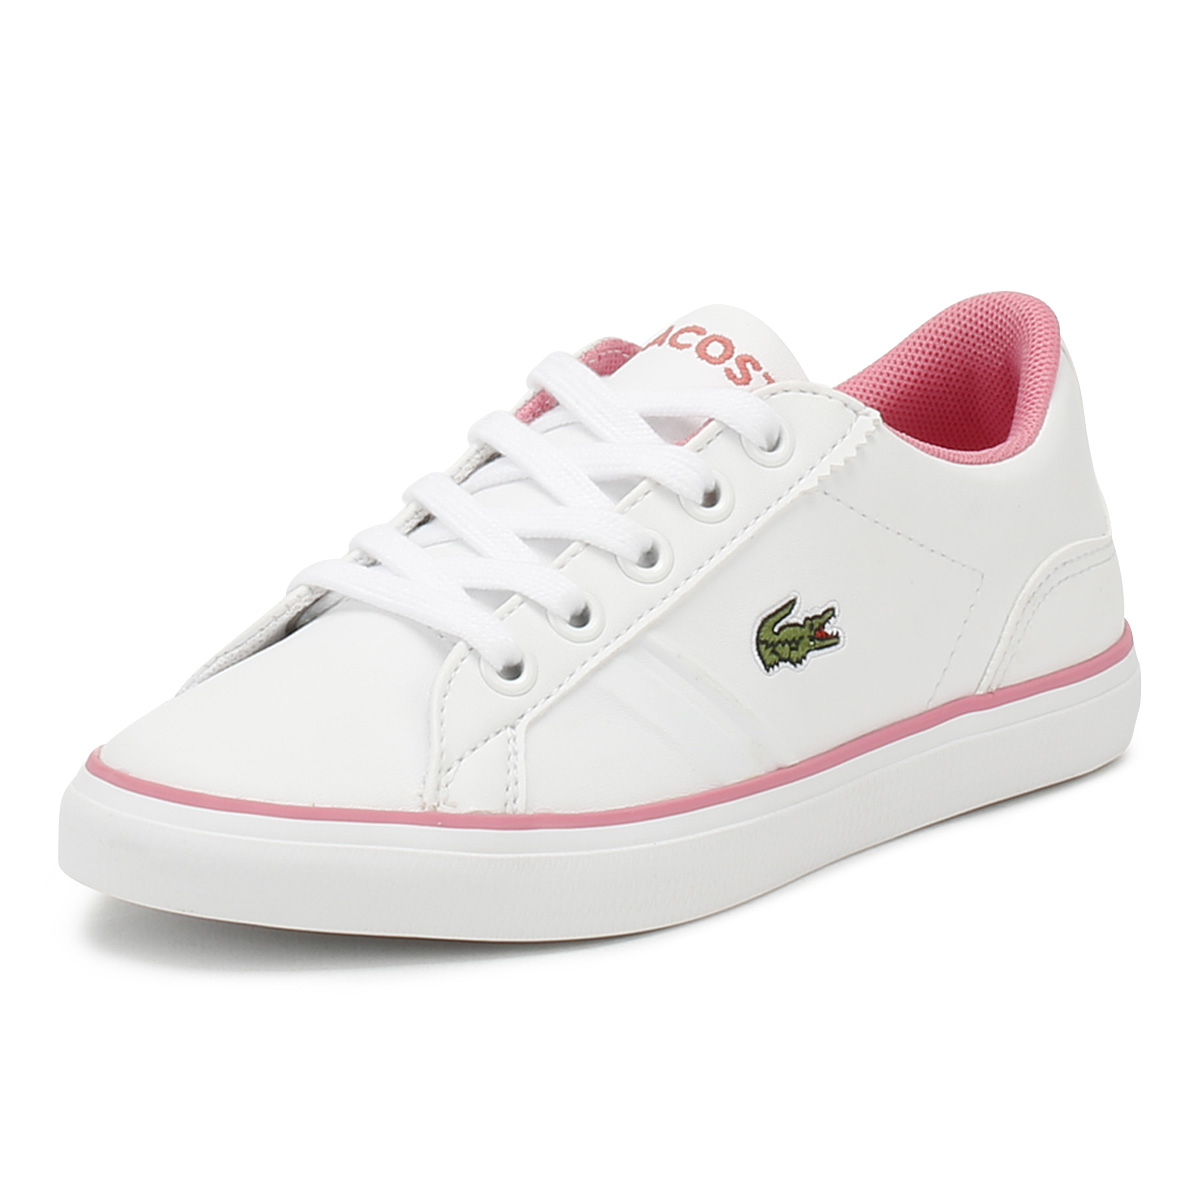 15c458b63e4023 Details about Lacoste Junior Trainers White   Pink Lerond 218 2 Kids Girls  Sport Casual Shoes